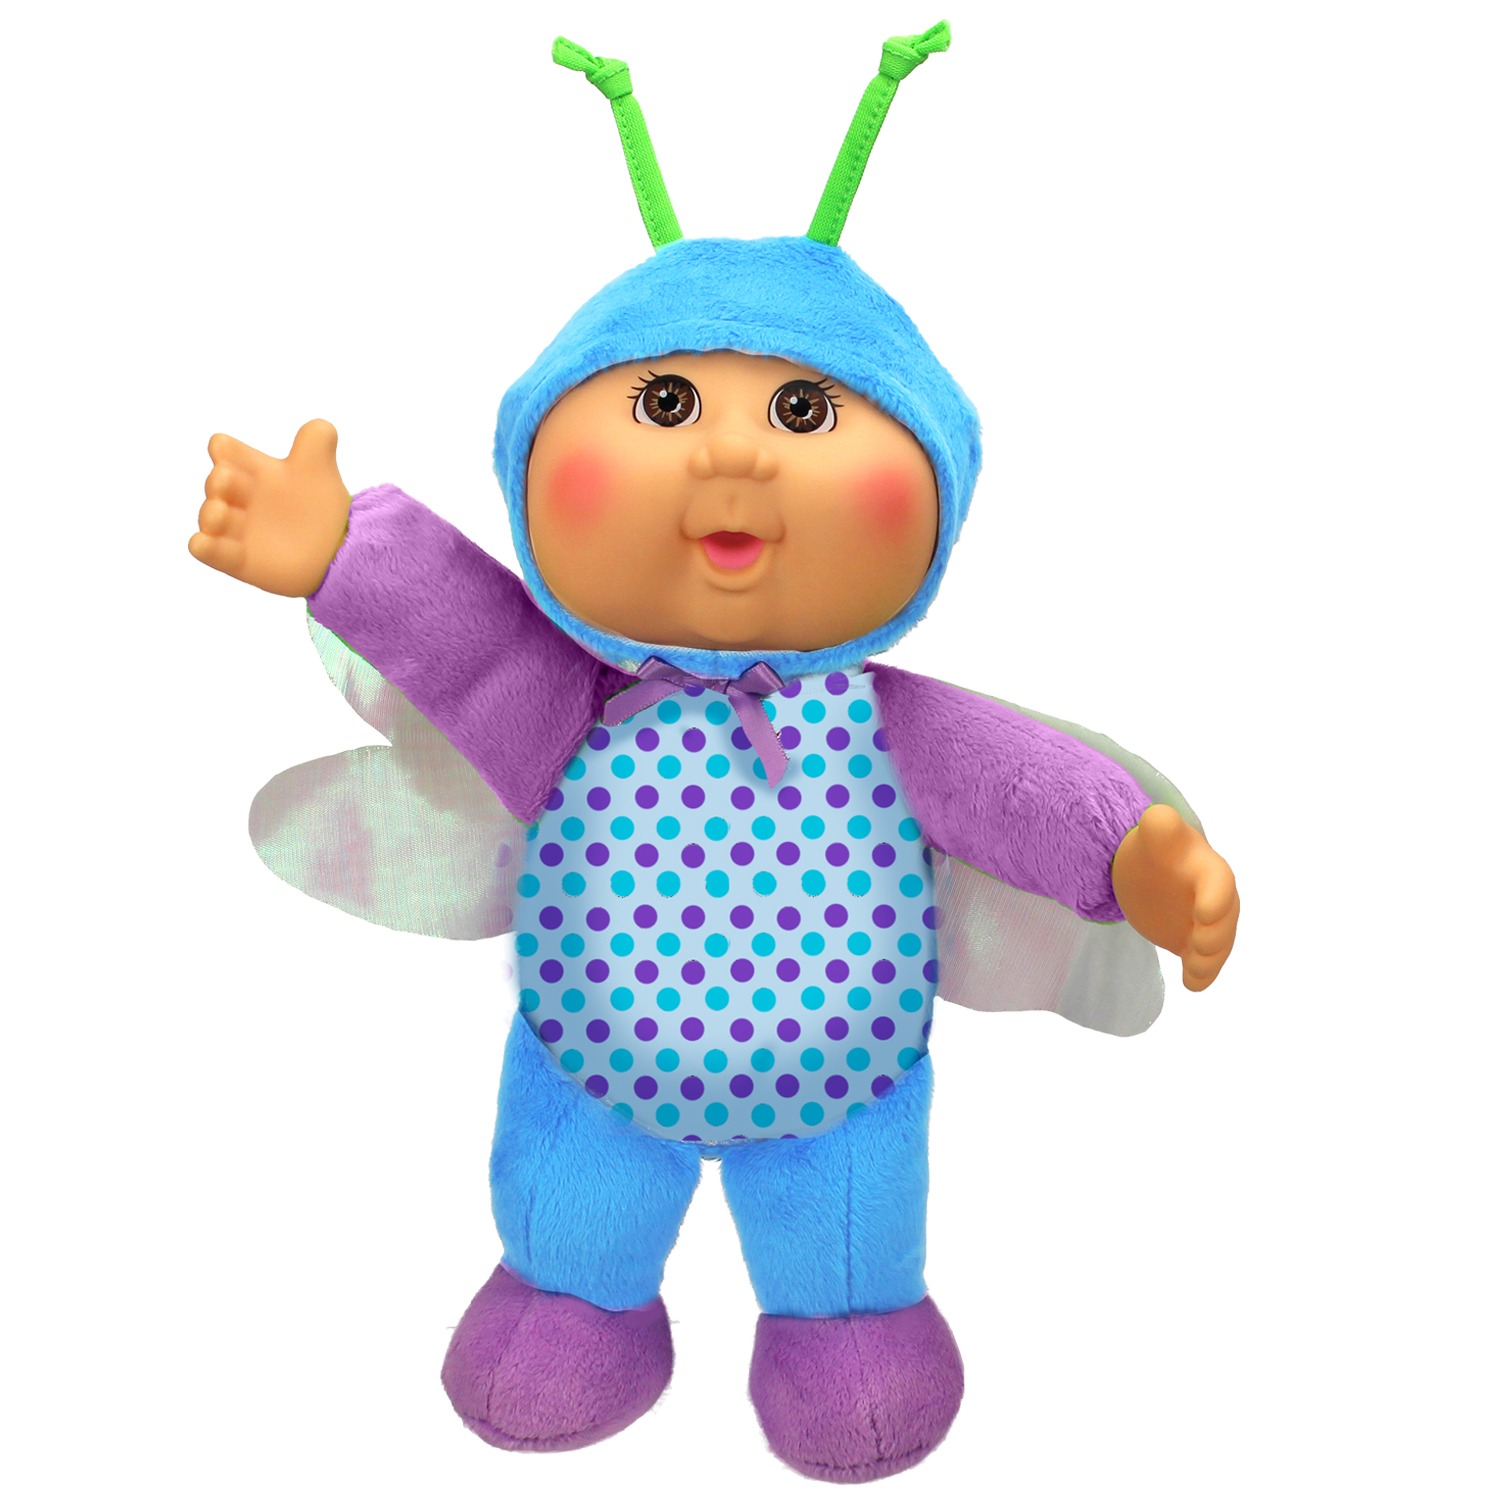 Cabbage Patch Kids Cuties Bluebell Dragonfly 9 Inch Soft Body Baby Doll Garden Party Collection by